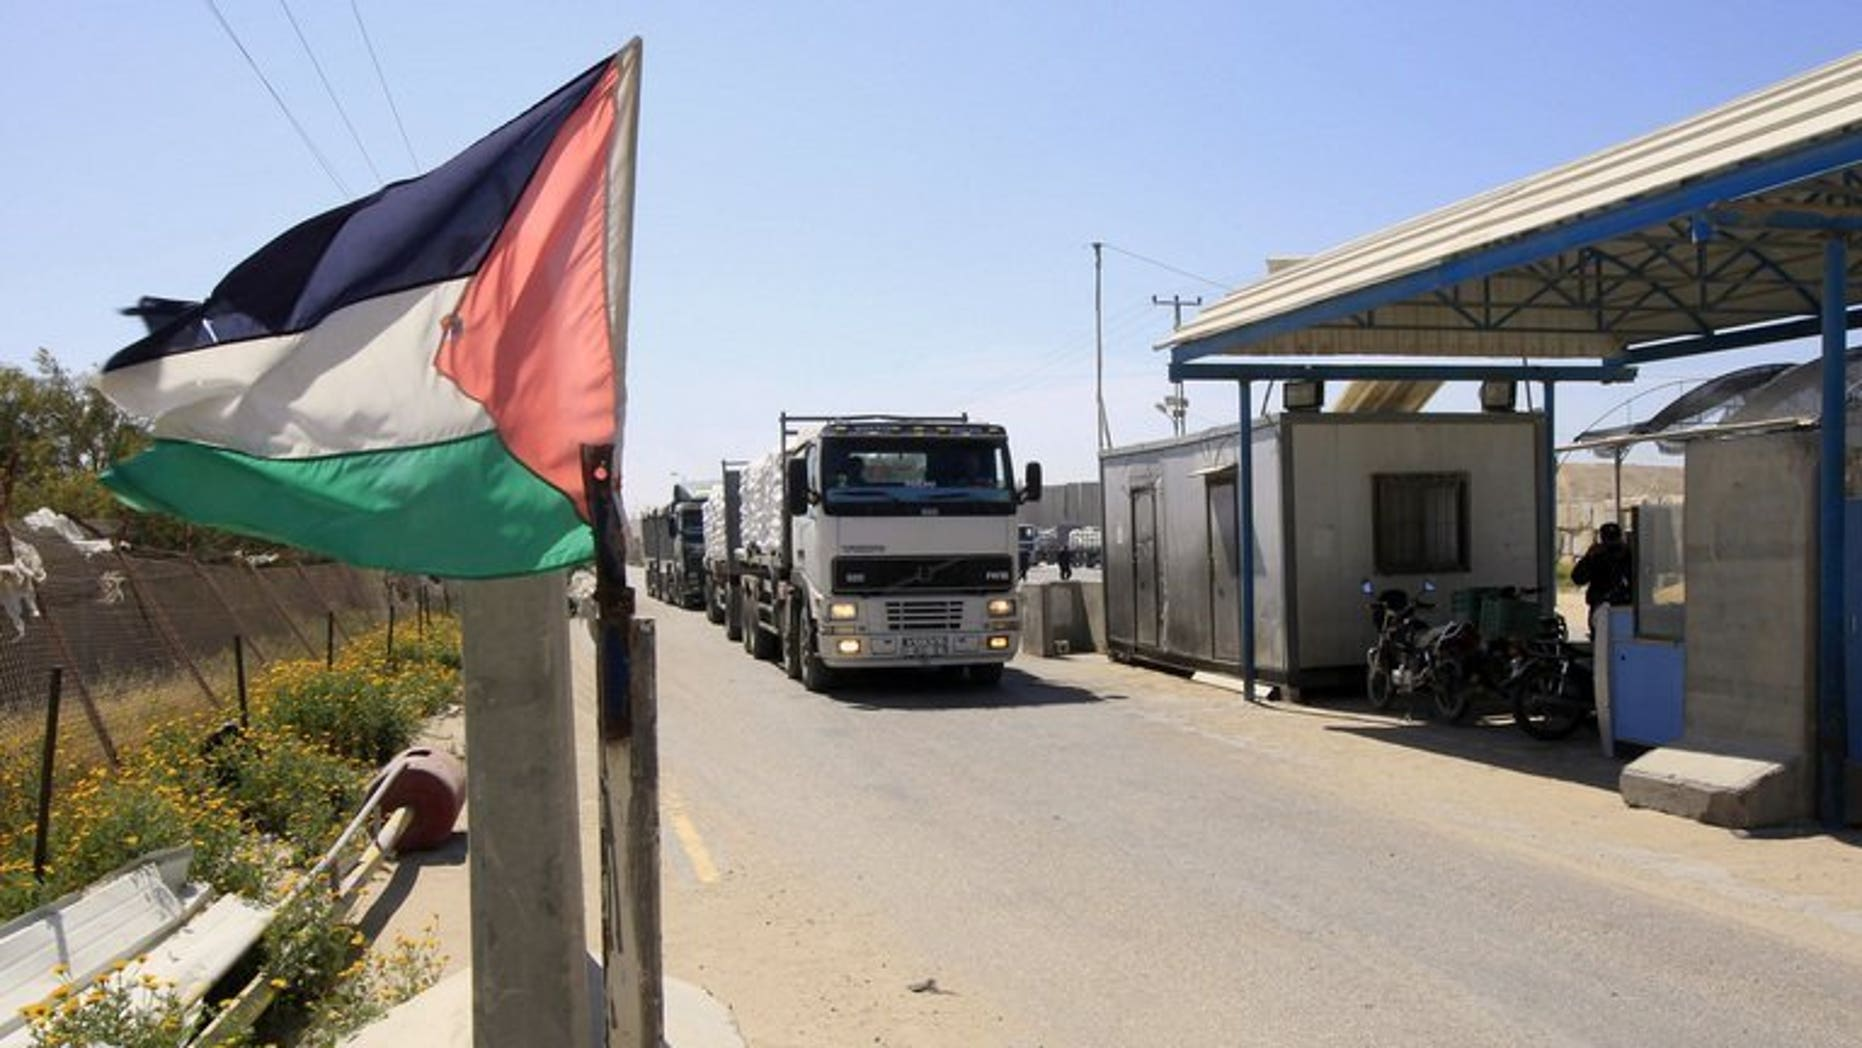 A truck carrying supplies into Rafah waits at the Kerem Shalom crossing between Israel and the Gaza Strip, on March 28, 2013. Israel has permitted a delivery of cement and steel for use by the private sector into the Gaza Strip for the first time since 2007, a Palestinian official told AFP.